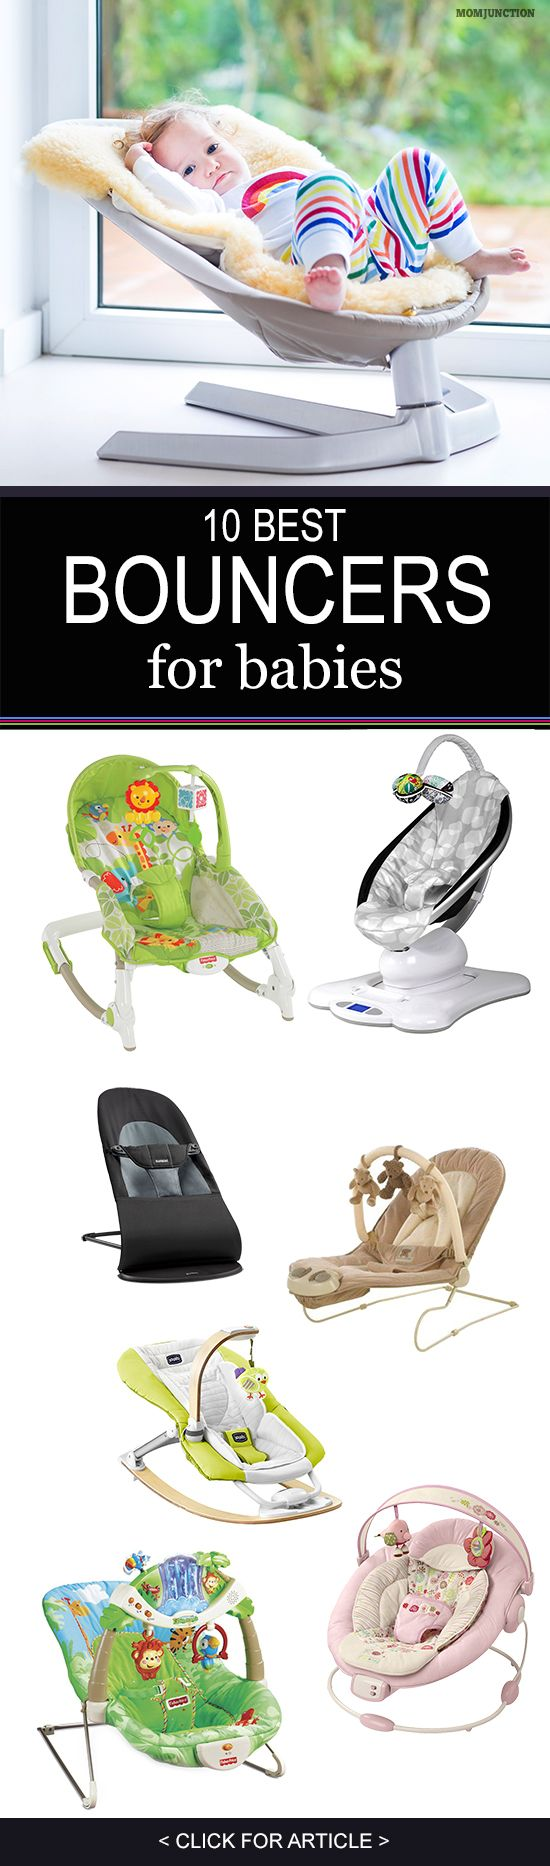 10 Best Bouncers For Babies